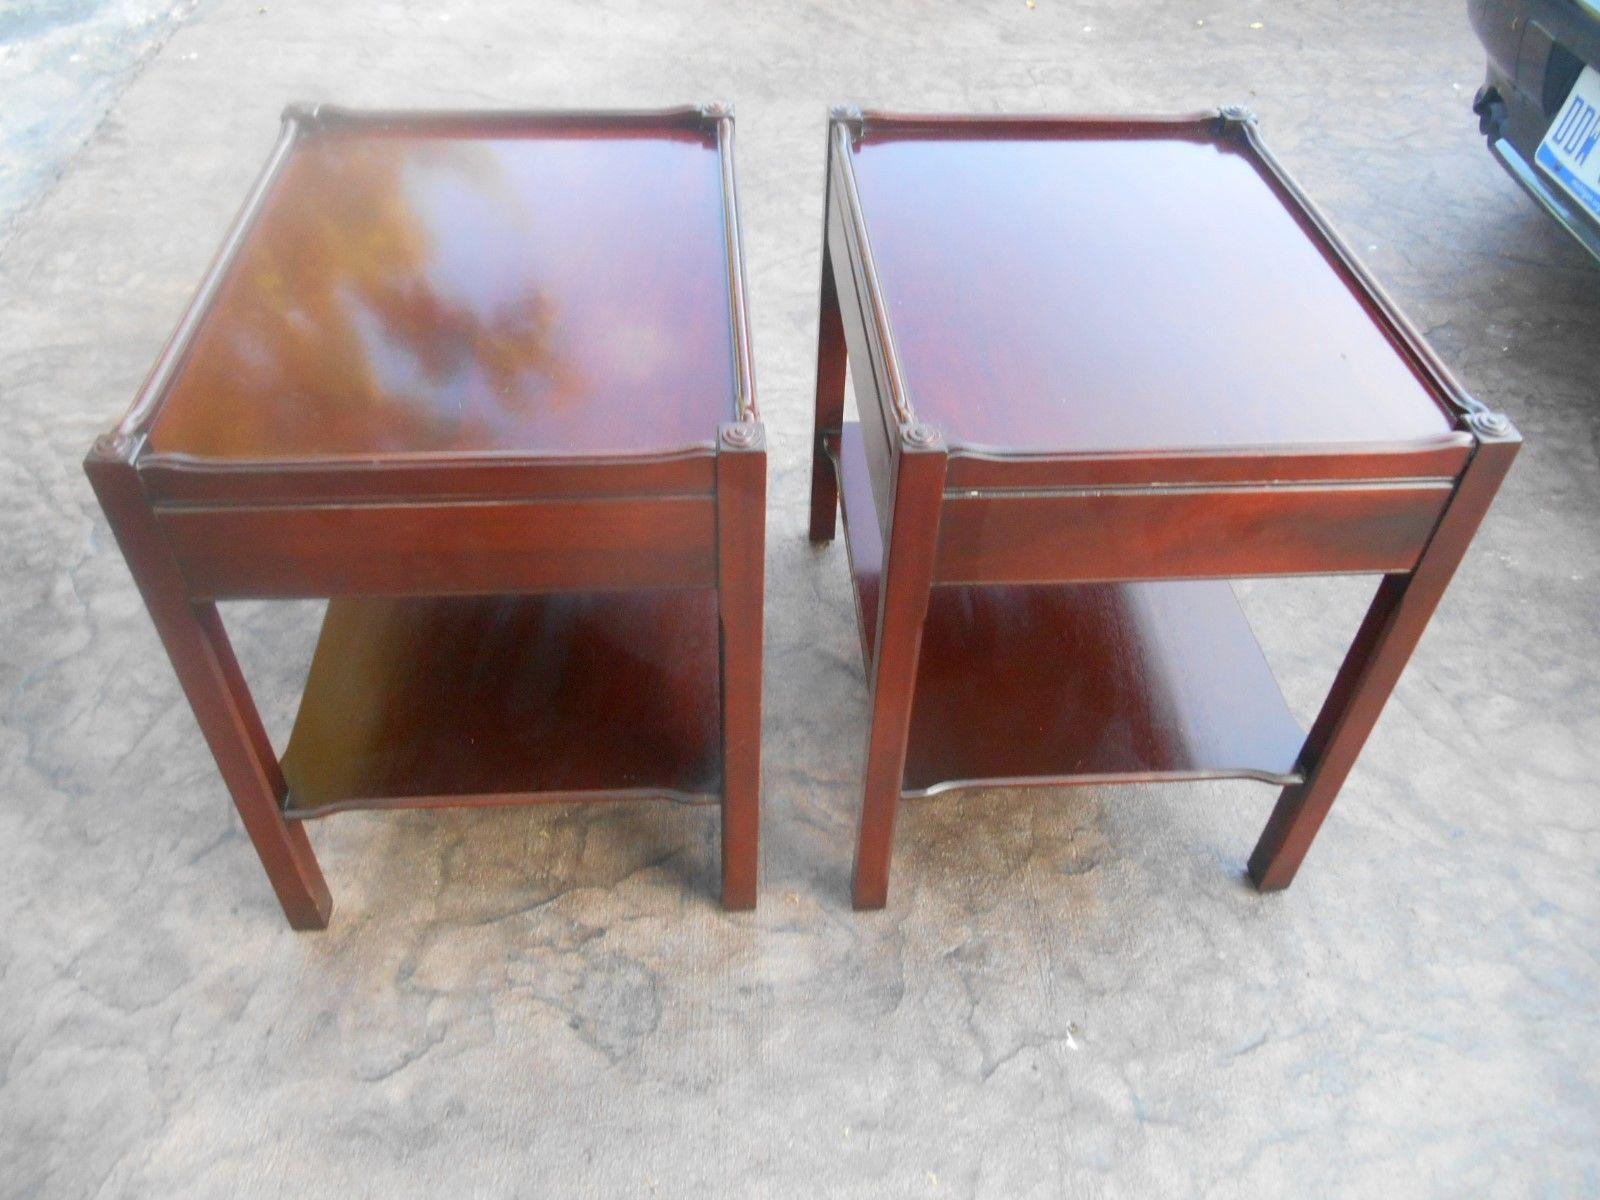 Captivating Hickory Chair Co. James River Two Tier End Tables   A Pair   Image